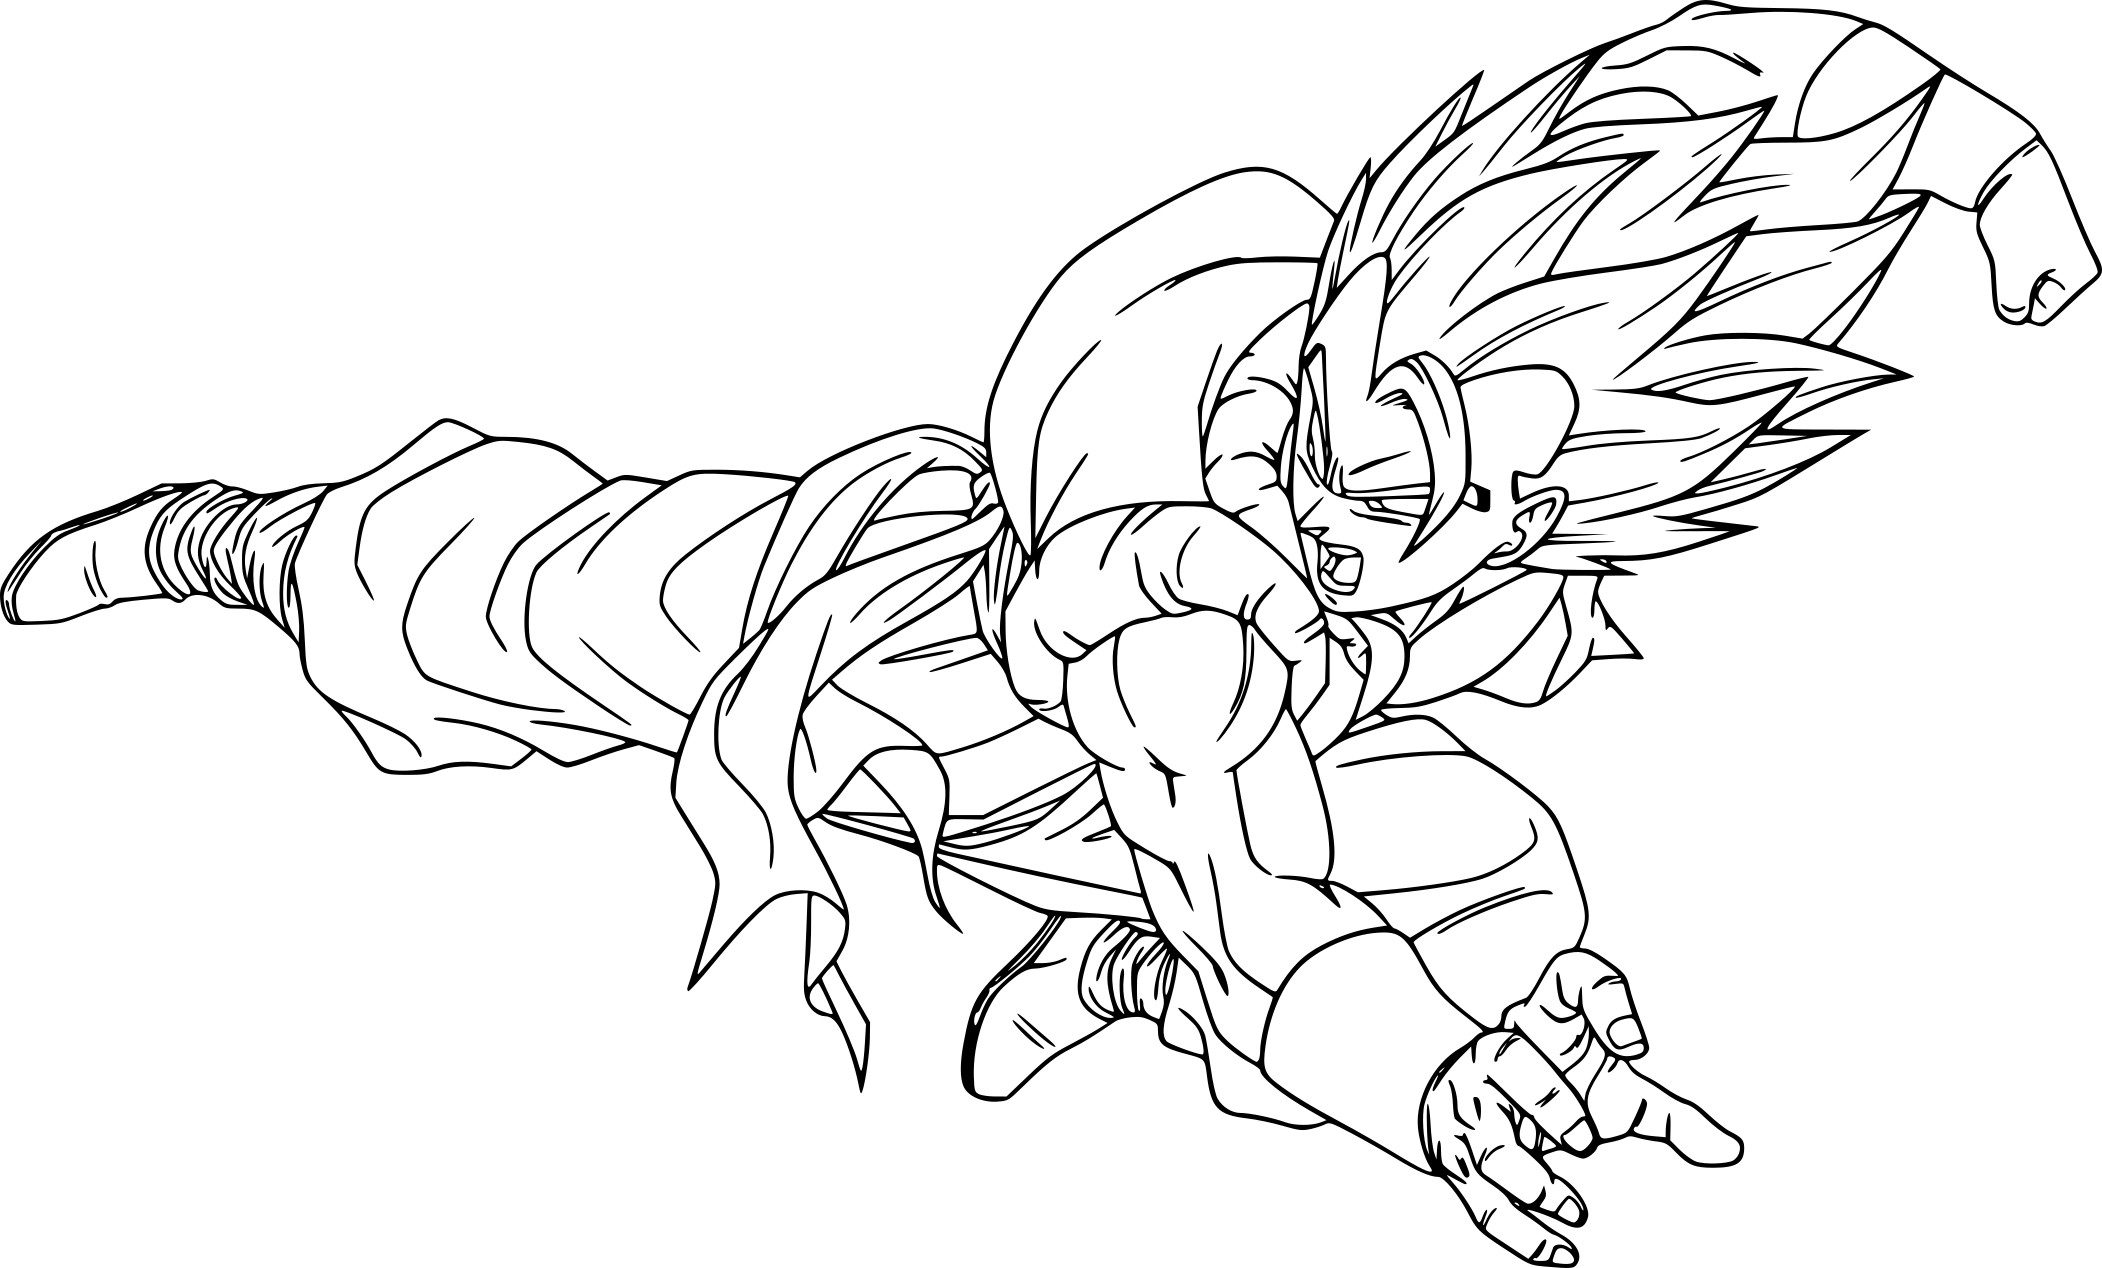 Coloriage dragon ball z gogeta imprimer sur coloriages info - Dessin de dragon ball za imprimer ...